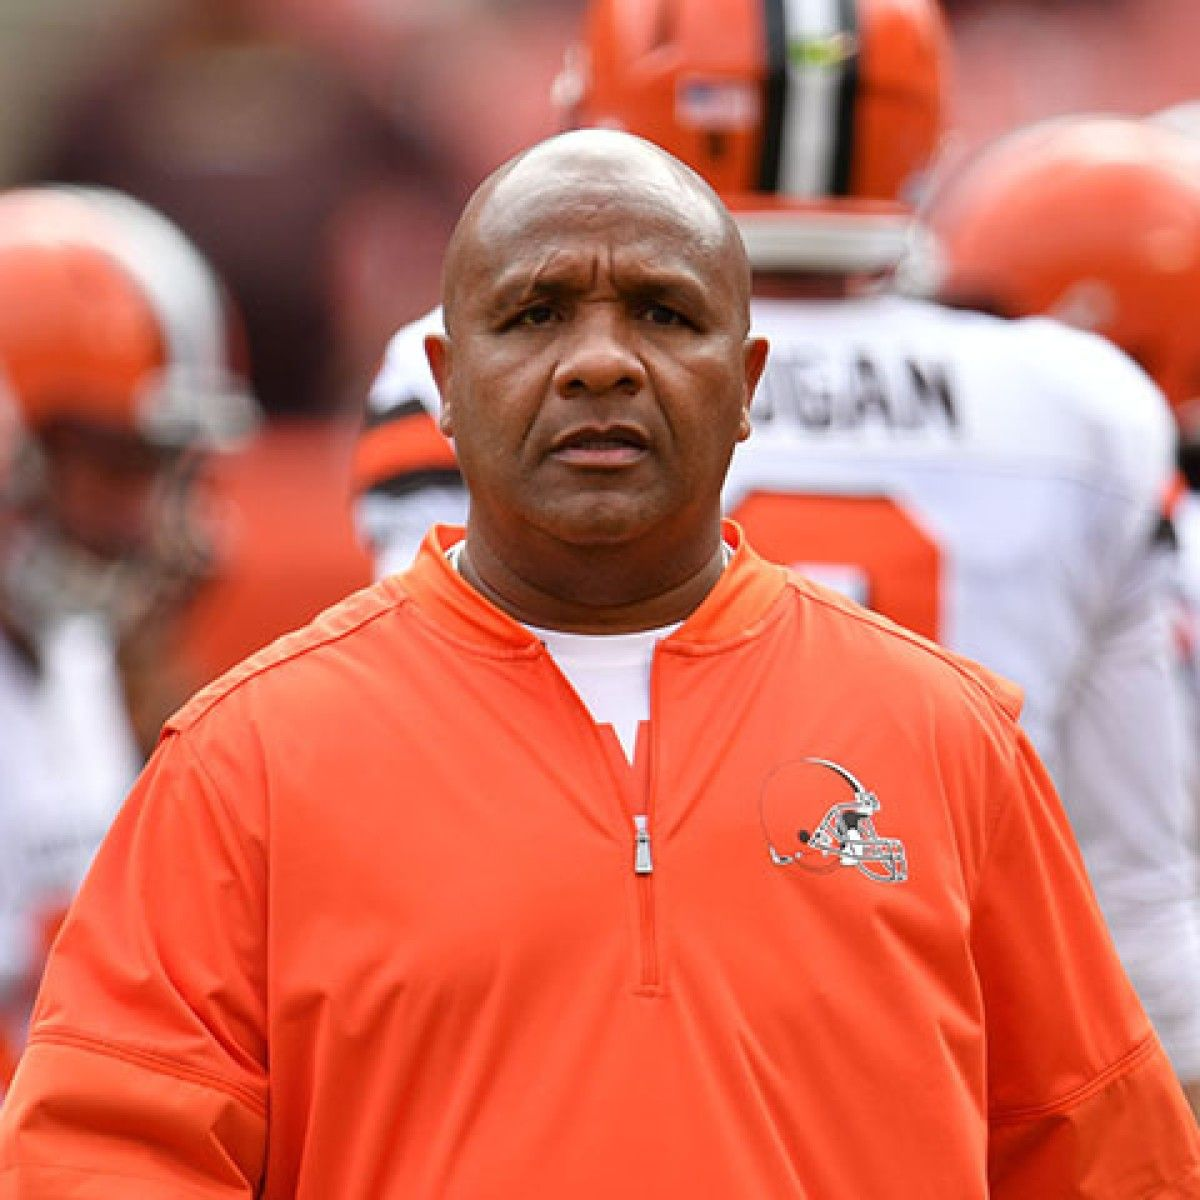 Marvin Lewis endorses Hue Jackson to be Bengals head coach